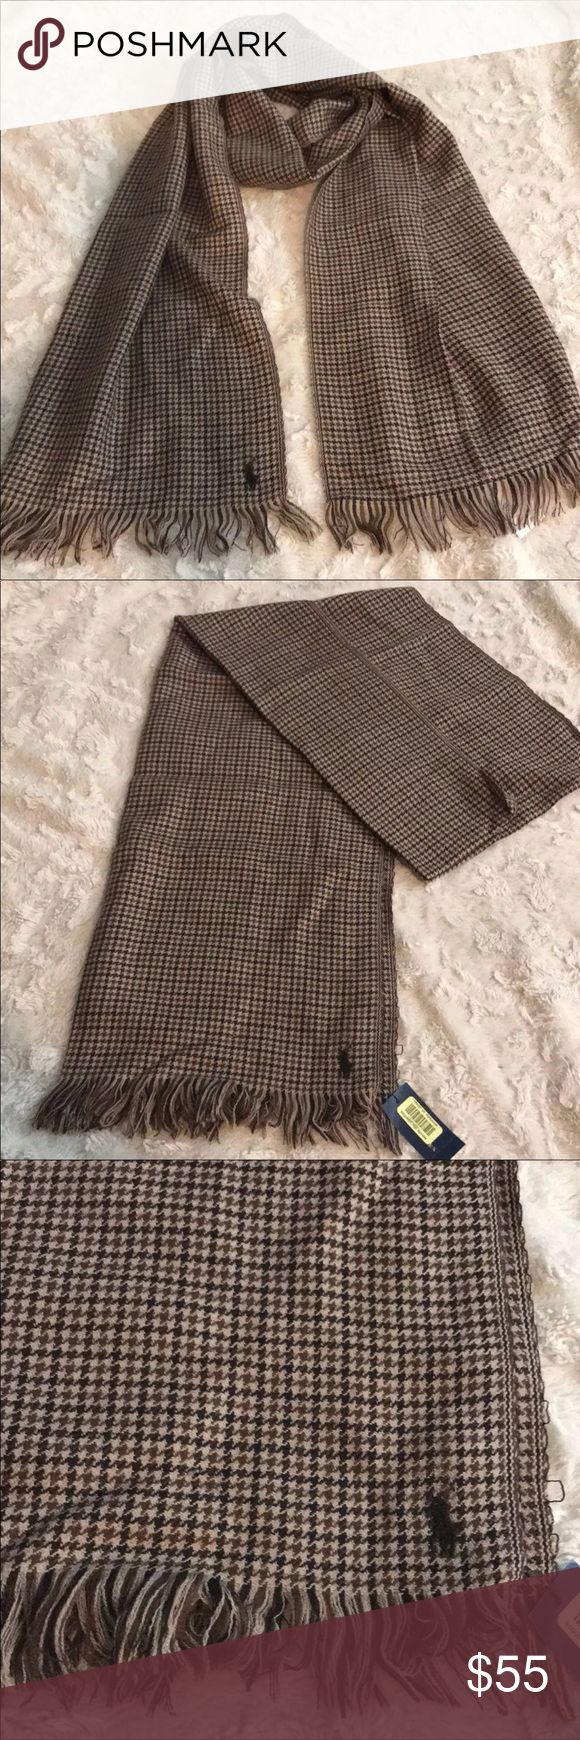 """Polo Ralph Lauren Reversible Plaid Scarf New with tag Polo Ralph Lauren Reversible Scarf $65 100% Virgin wool Measurements 68"""" in Length and 14"""" width  Color Brown and Beige Plaid pattern(both sides) with the Logo Pony embroidered on both sides in dark Brown  Polo Ralph Lauren Reversible fringed scarf...Light-weight, extremely soft...Designed to make a statement   Please check my other listings i can combine shipping for you   SIN : GRE Polo by Ralph Lauren Accessories Scarves"""